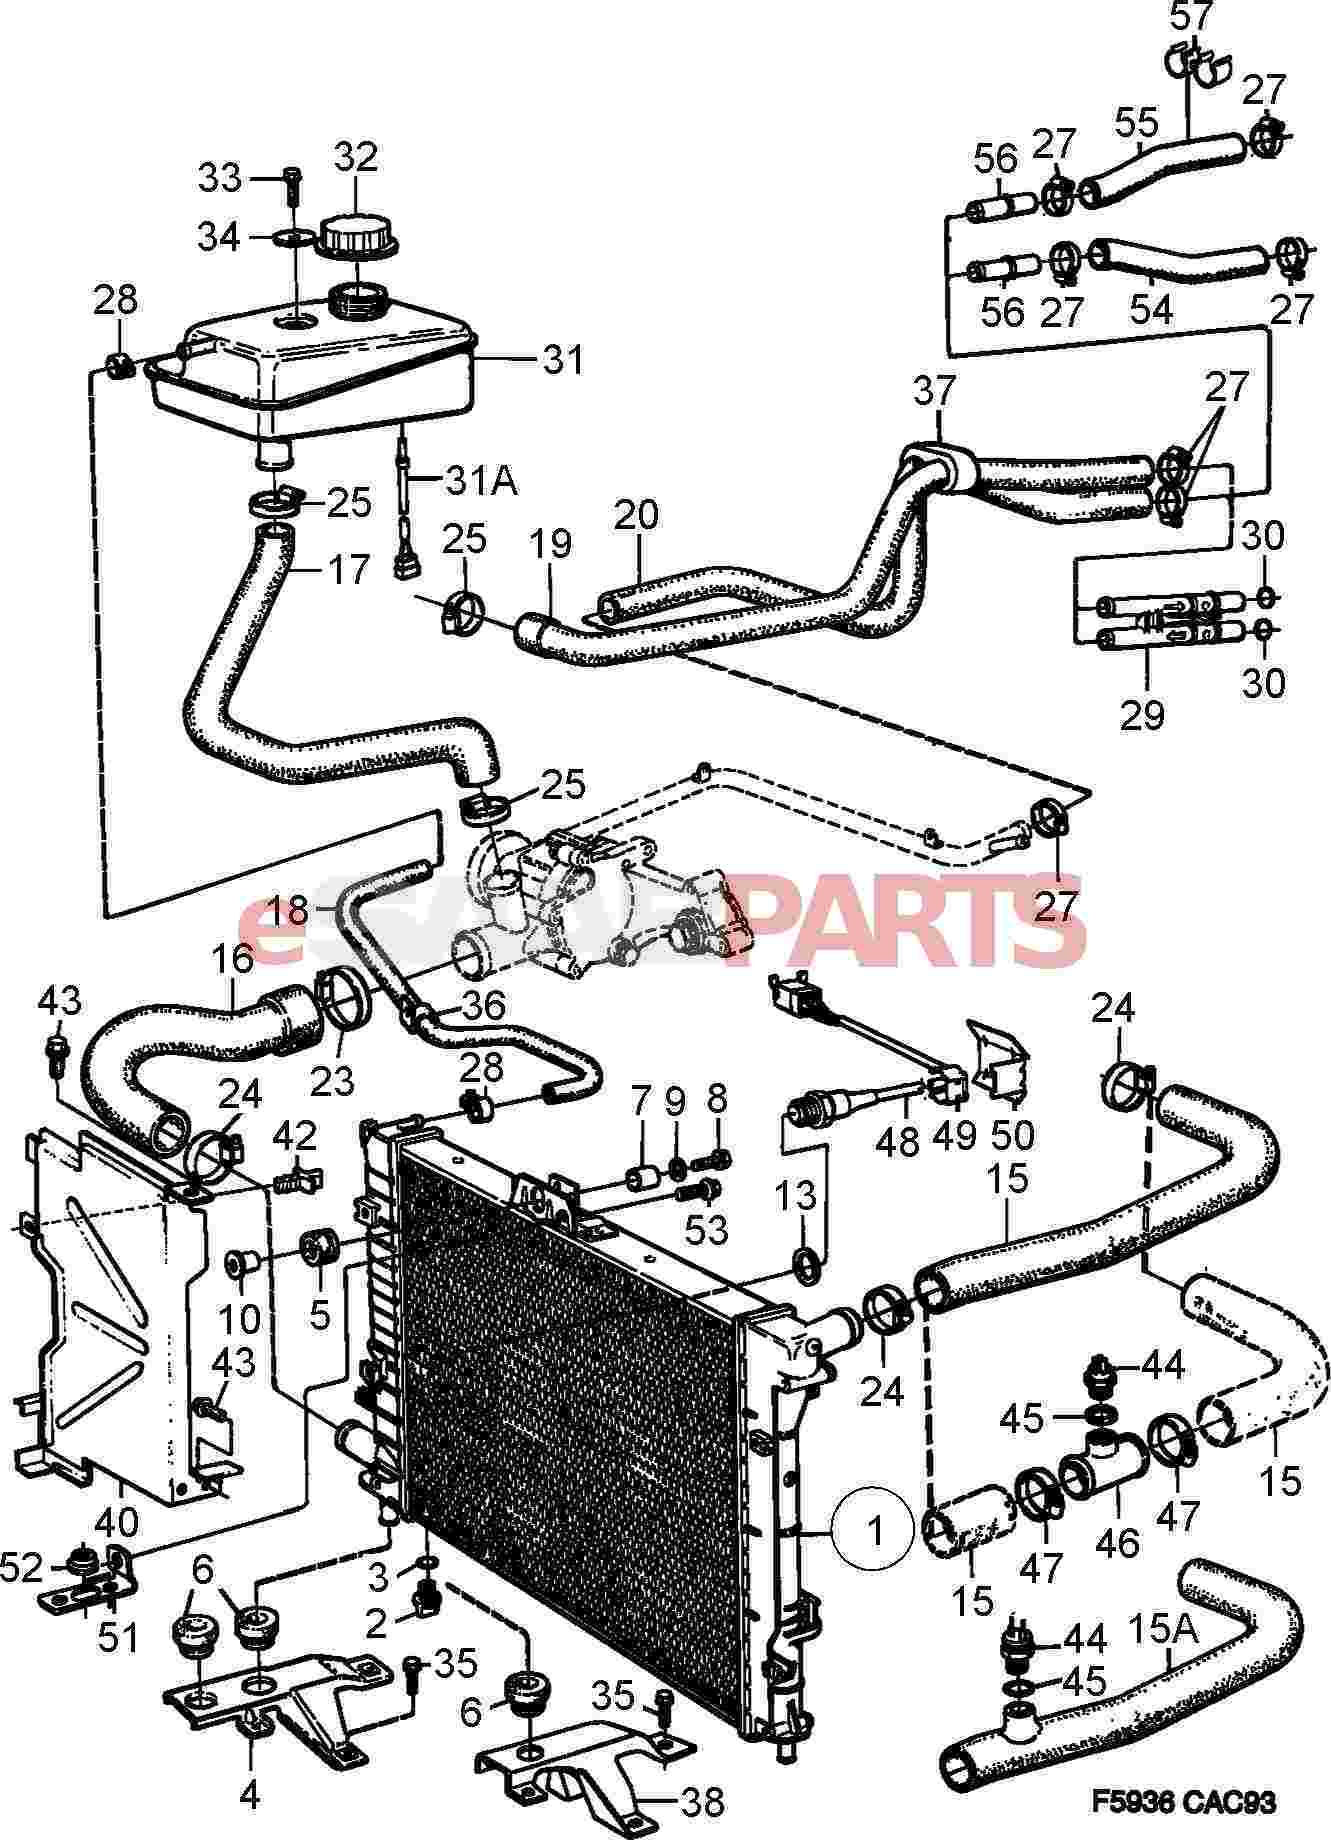 Saab Cooling System Diagram Saab Wiring Diagram Images